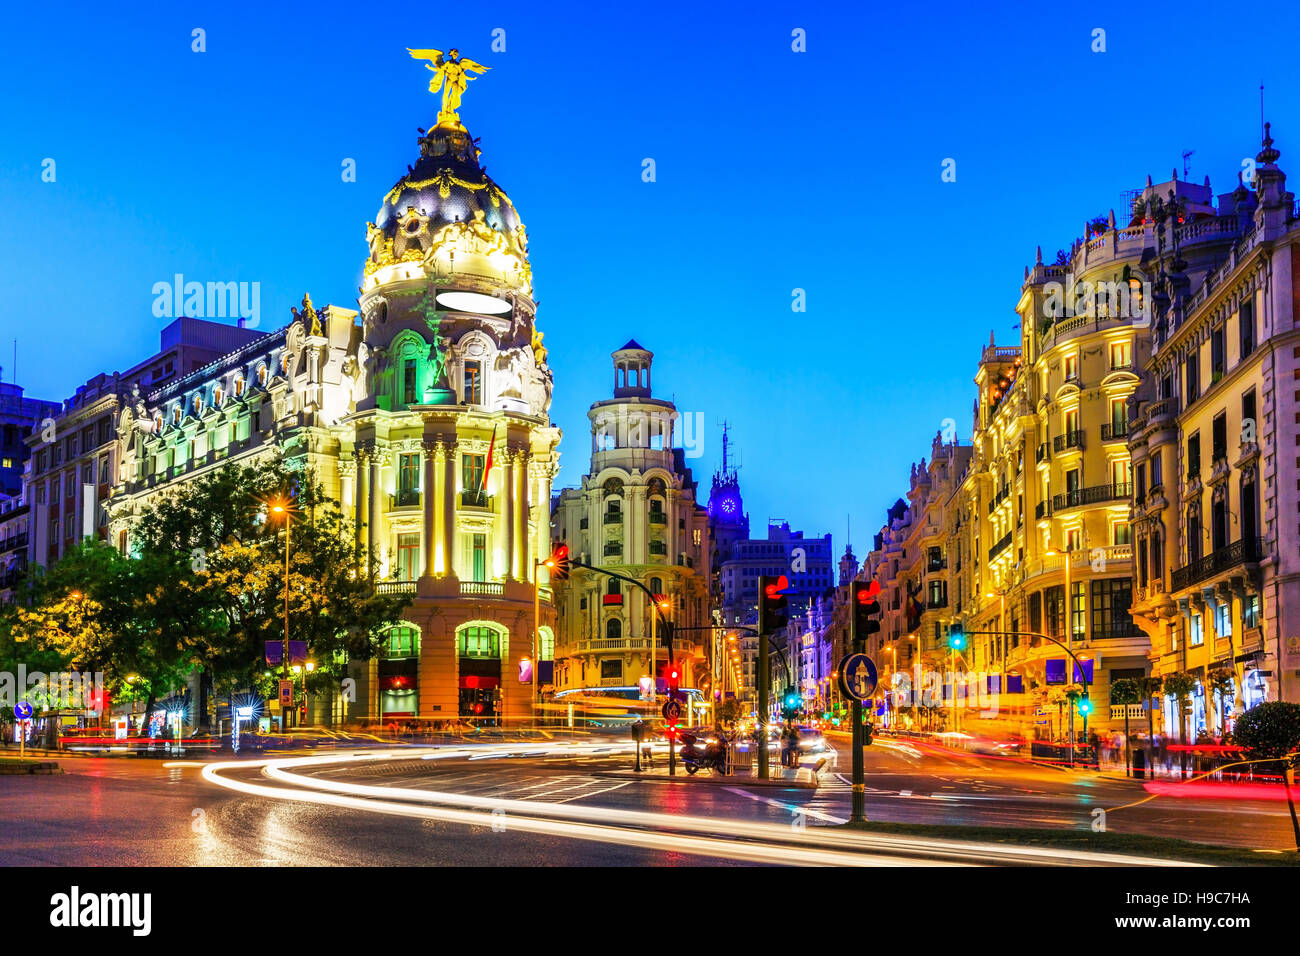 Madrid, Spain. Gran Via, main shopping street at dusk. - Stock Image